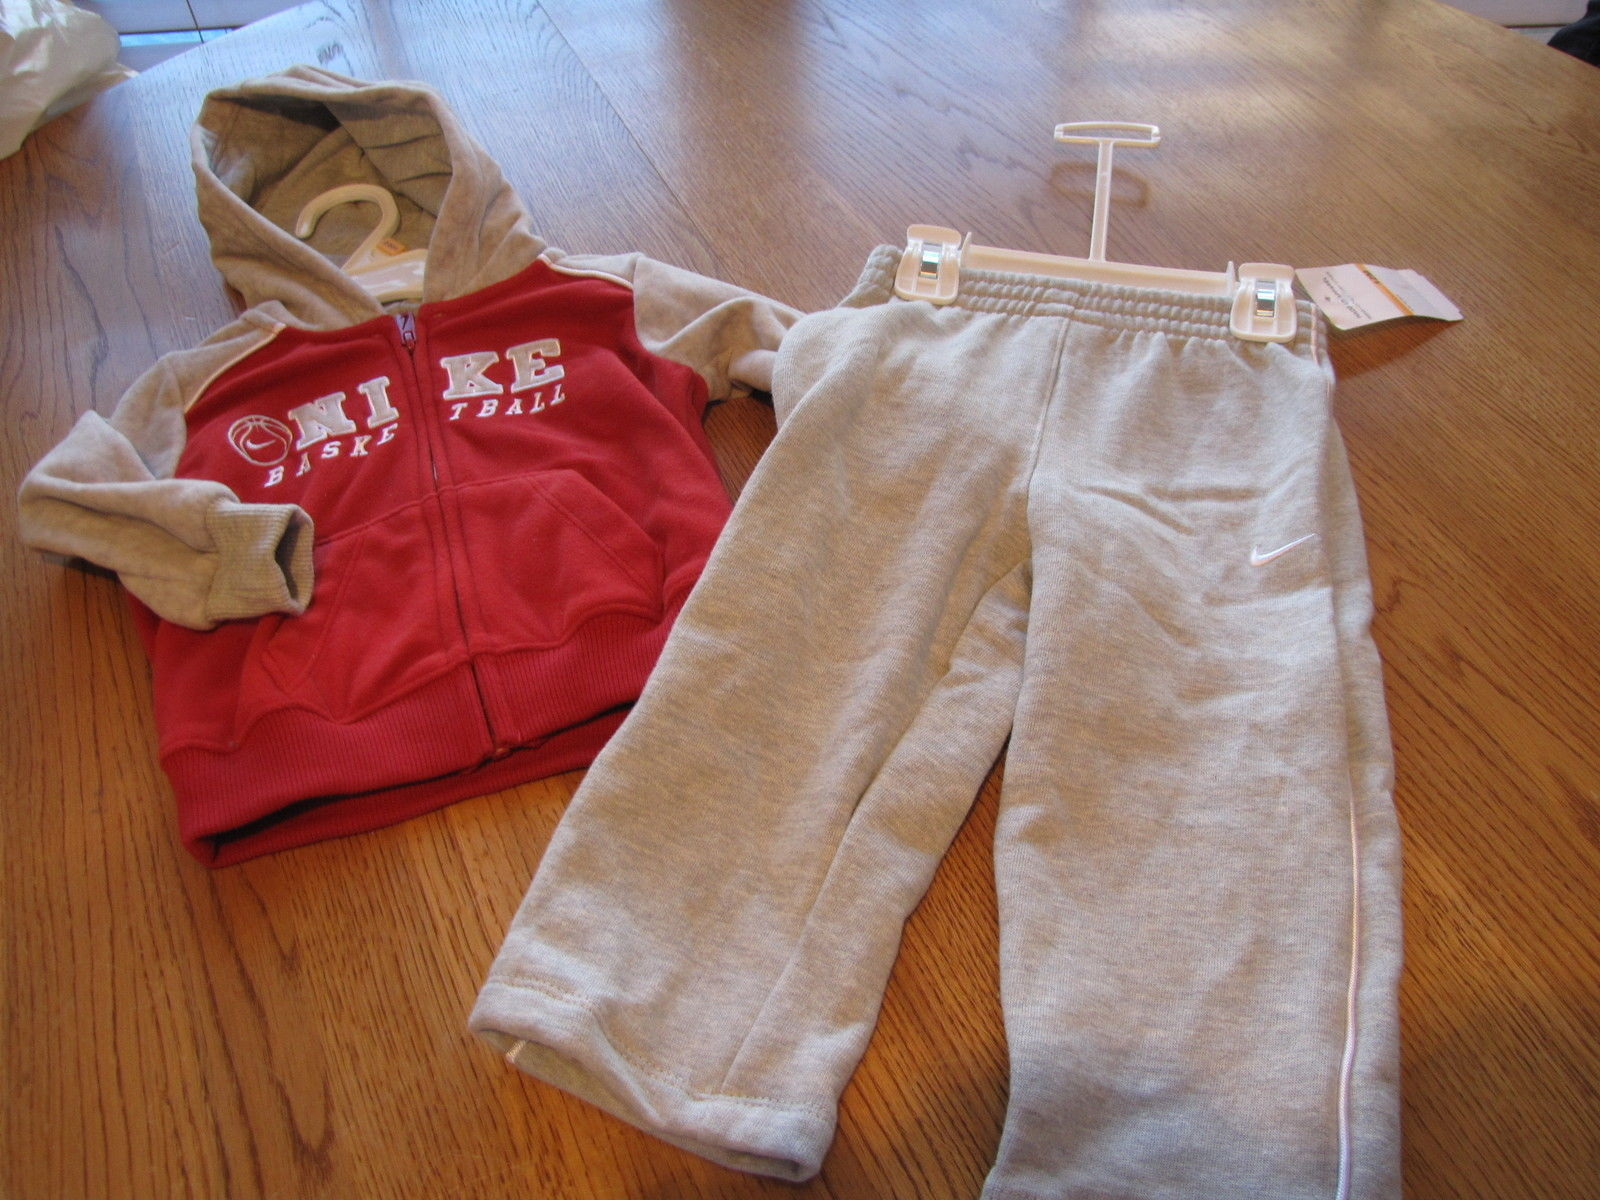 9349069e77b99e S l1600. S l1600. Previous. Boy s Baby Nike hoodie sweat jacket with pants  set red grey 12M months  44 NEW